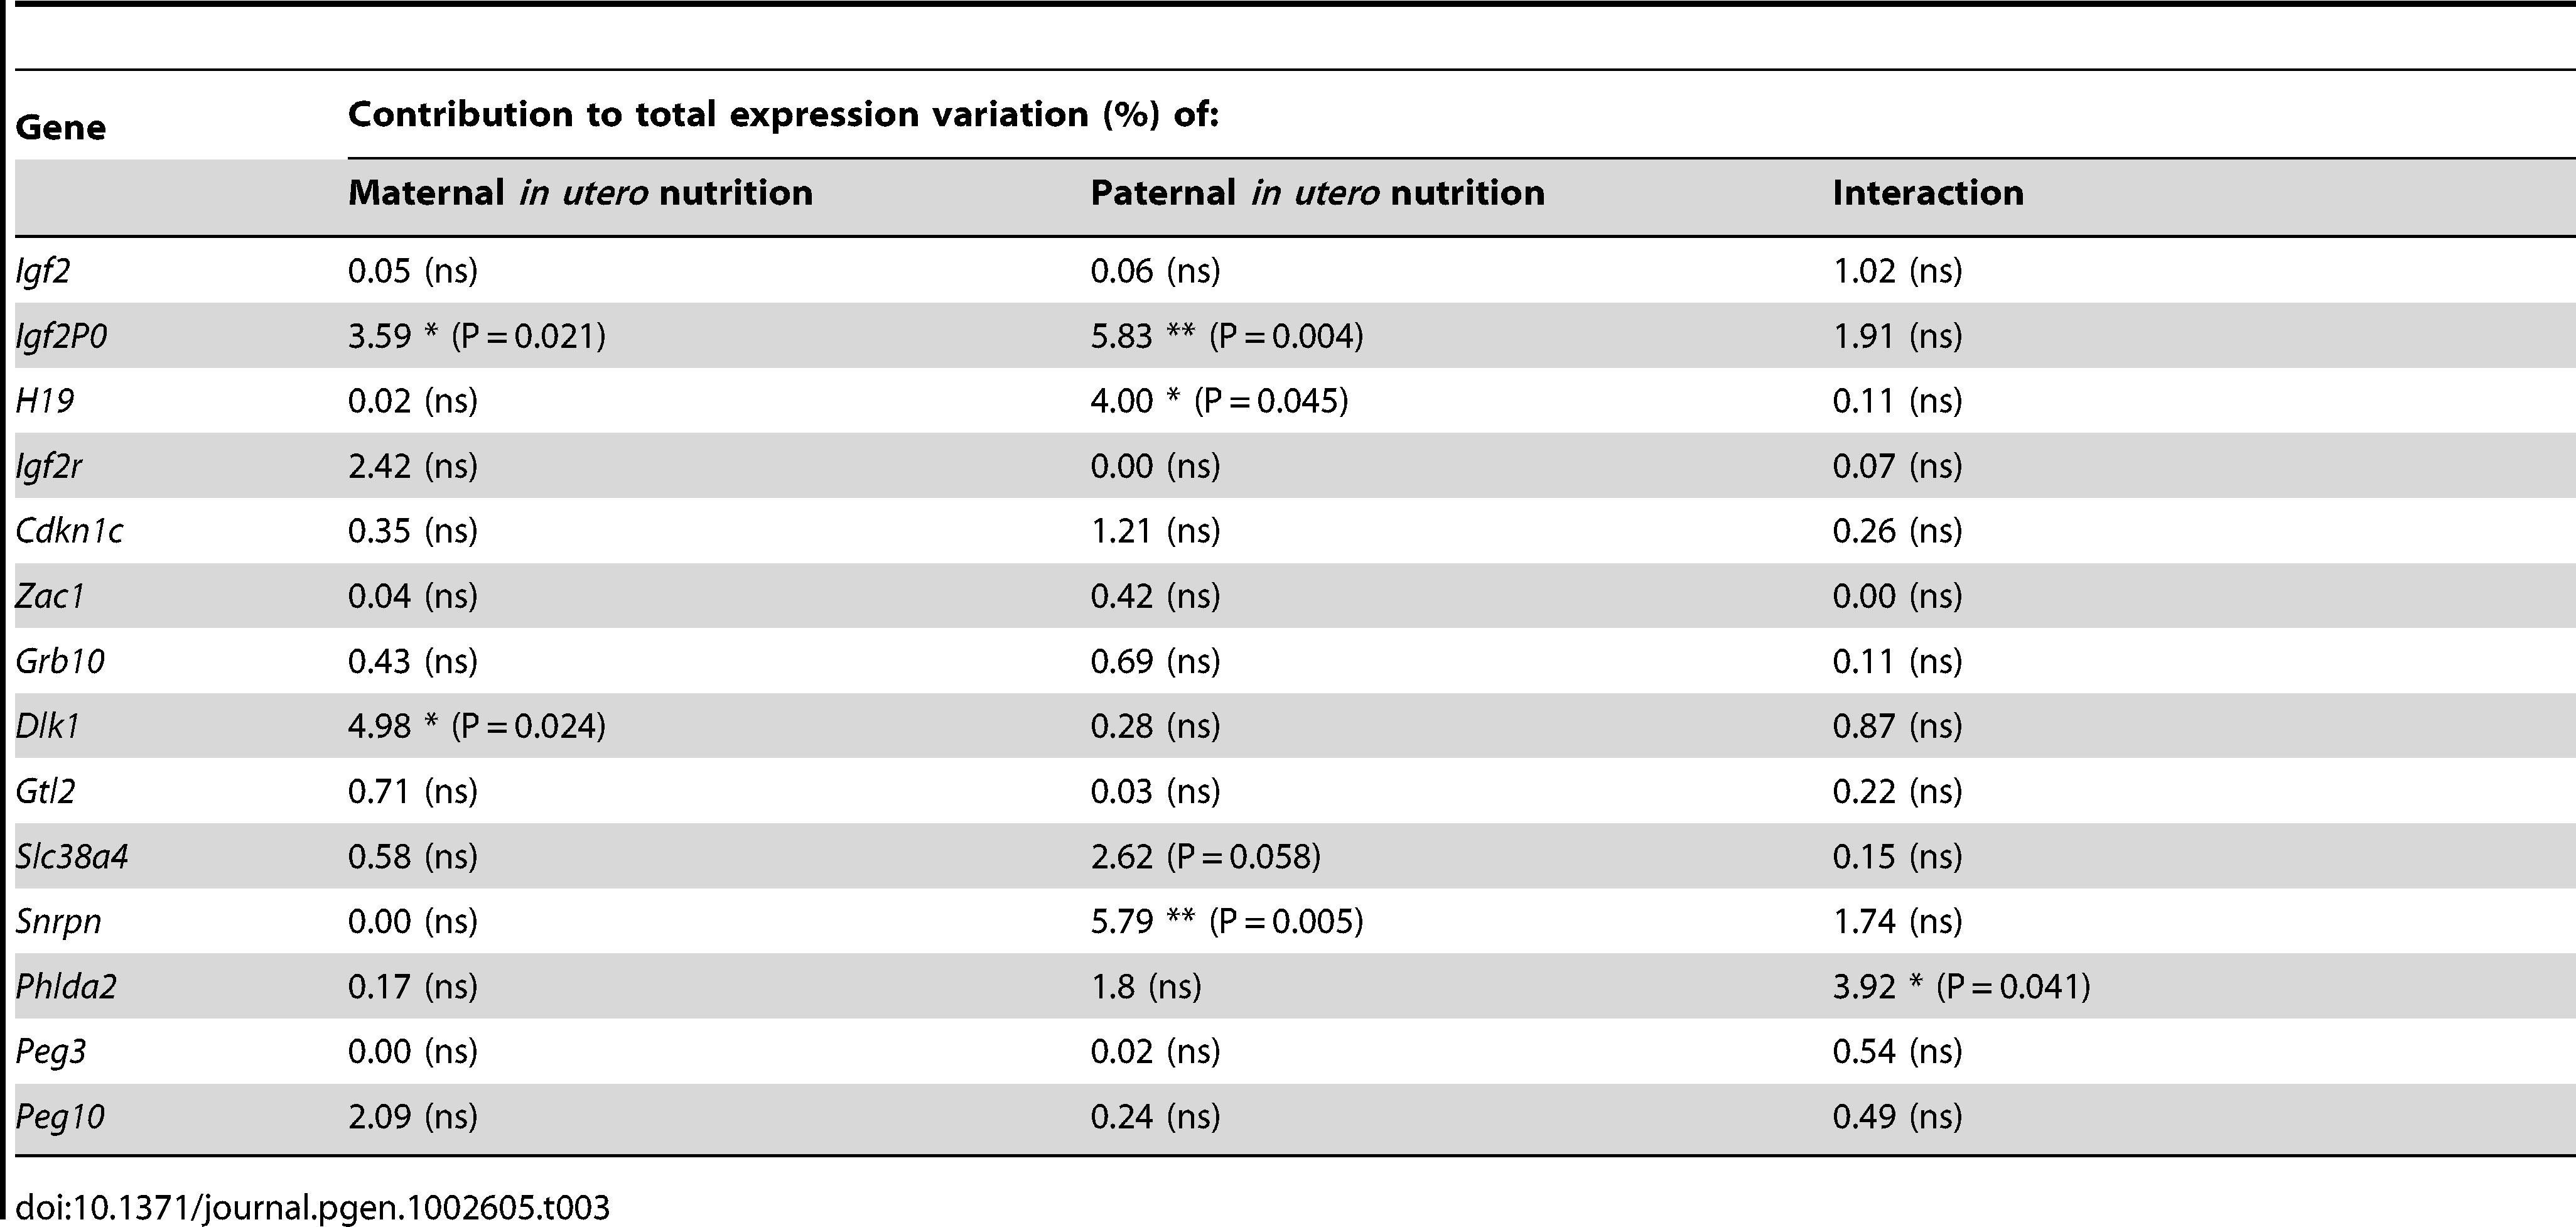 Analysis of F2 placental candidate imprinted gene expression by two-way ANOVA.